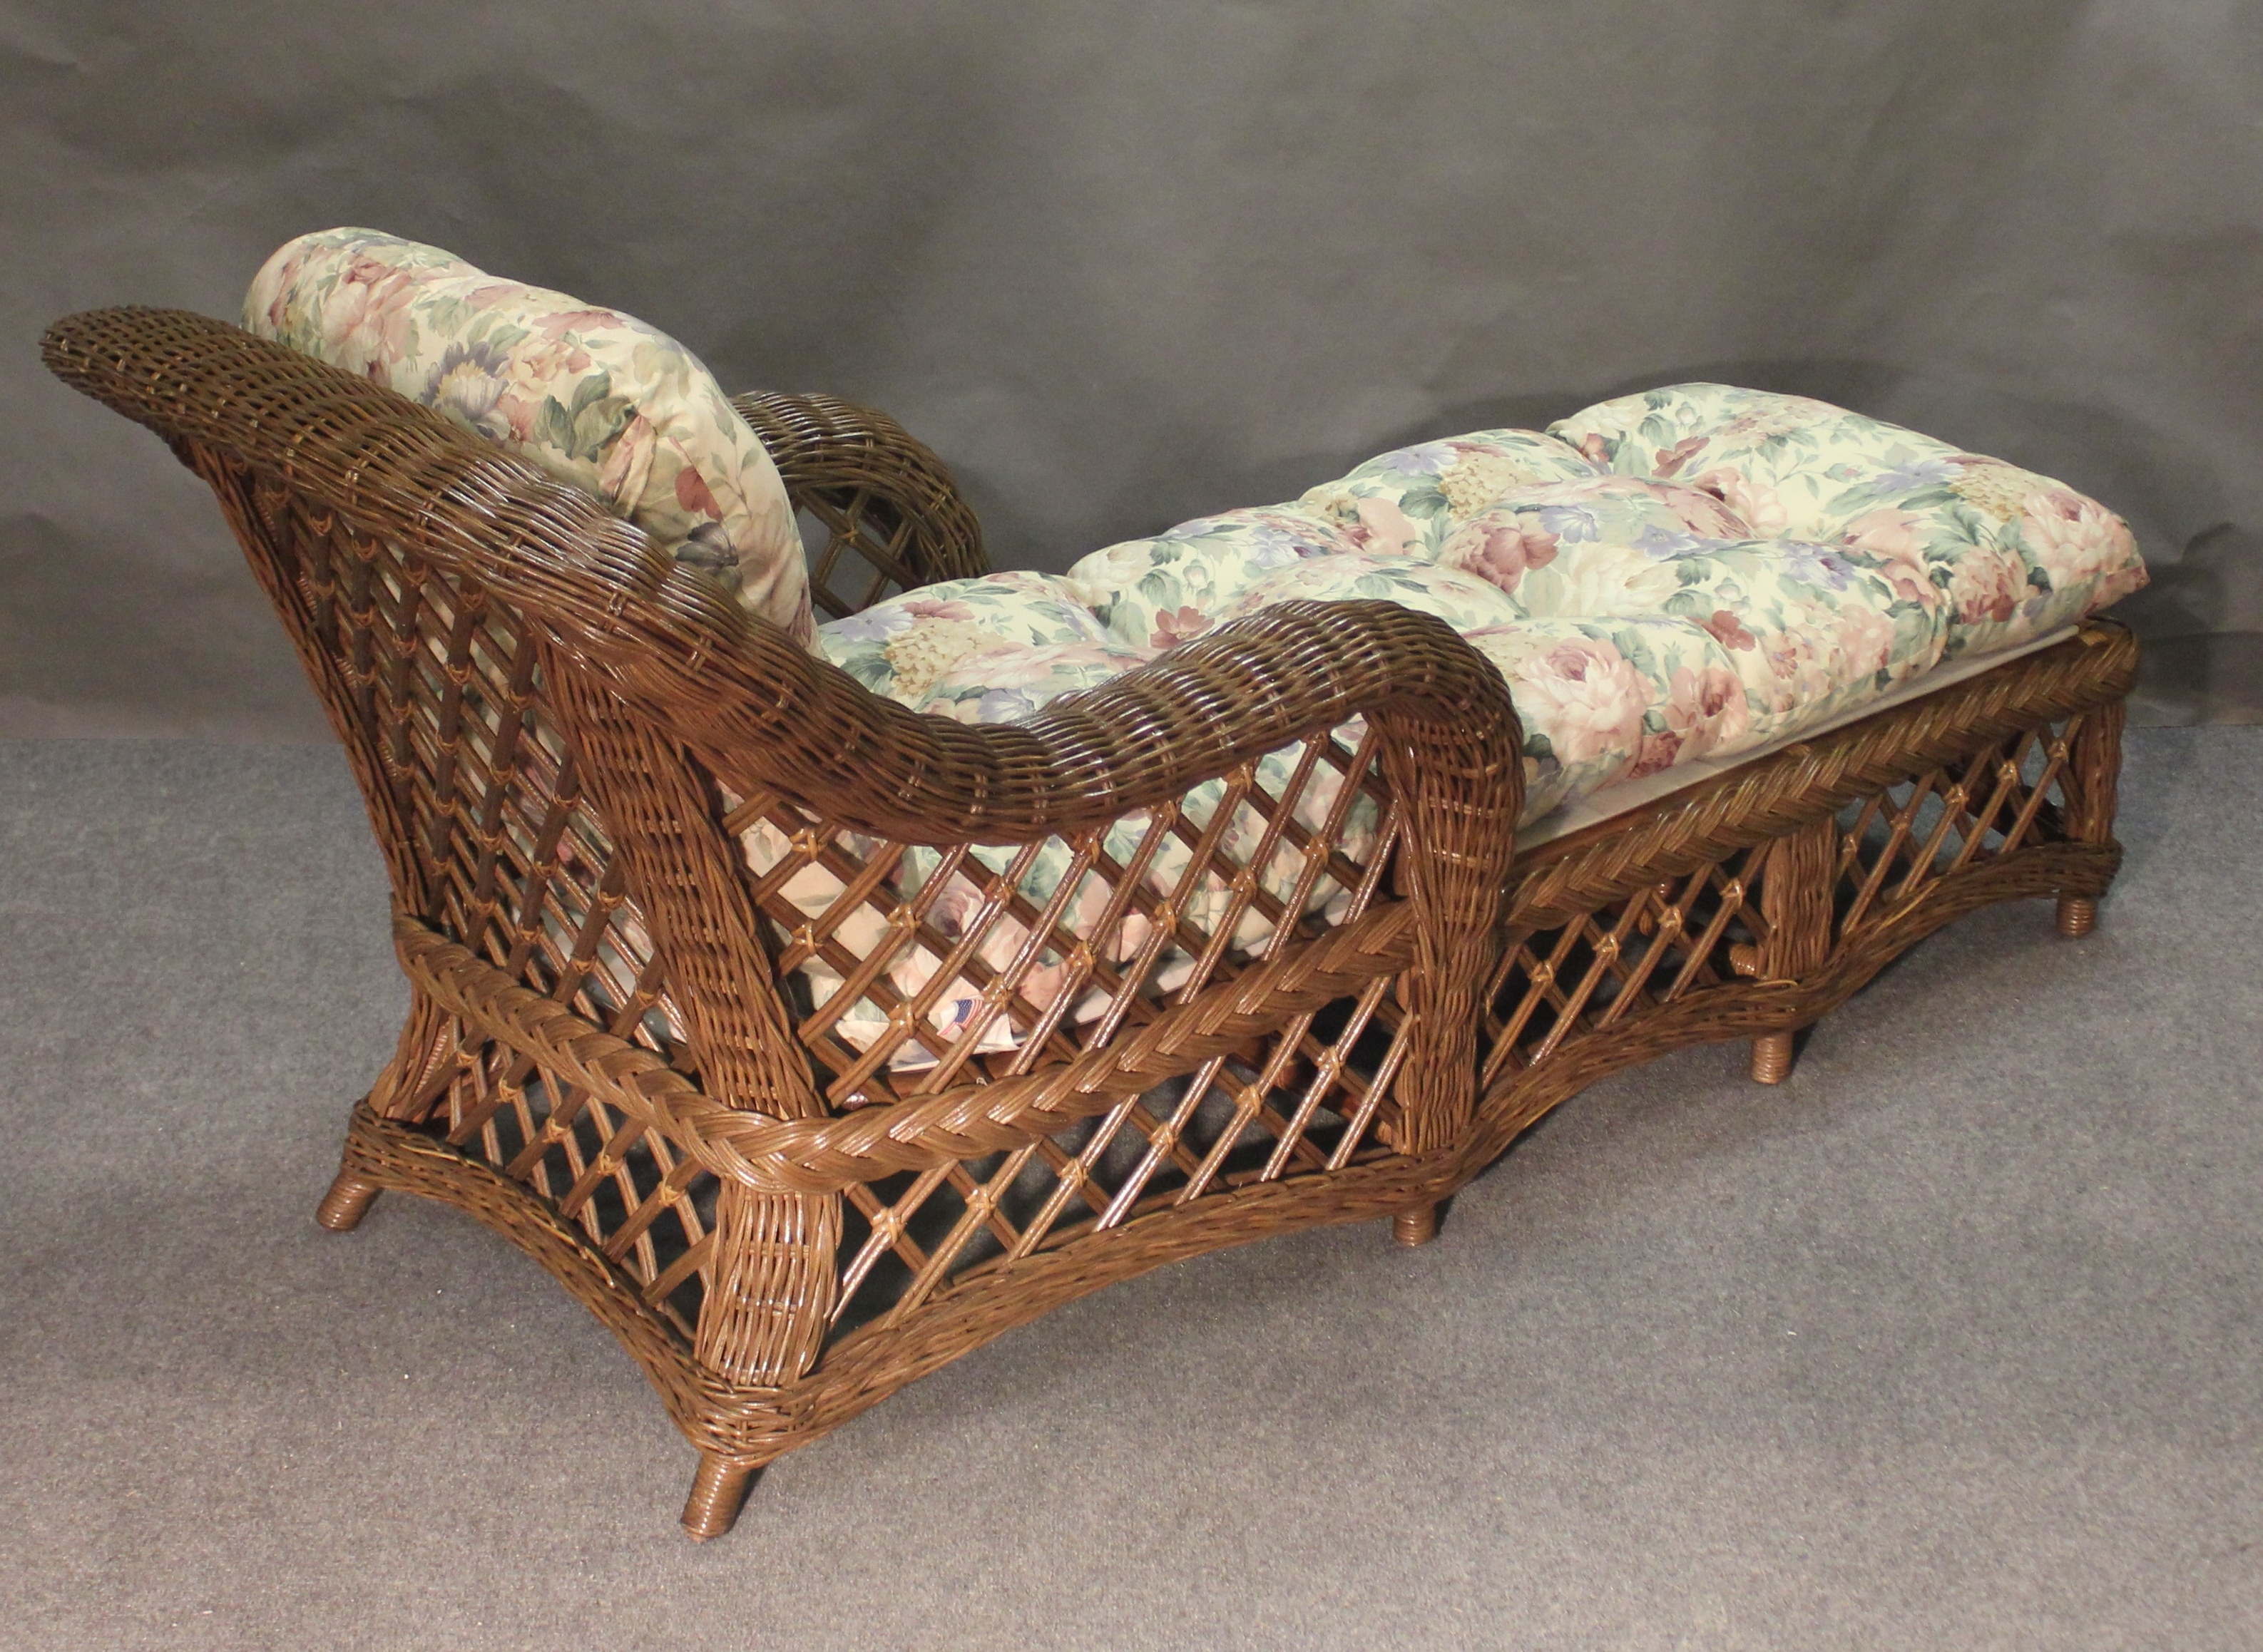 Widely Used Cape Cod Wicker Chaise Lounge, All About Wicker Within Outdoor Wicker Chaise Lounges (View 11 of 15)